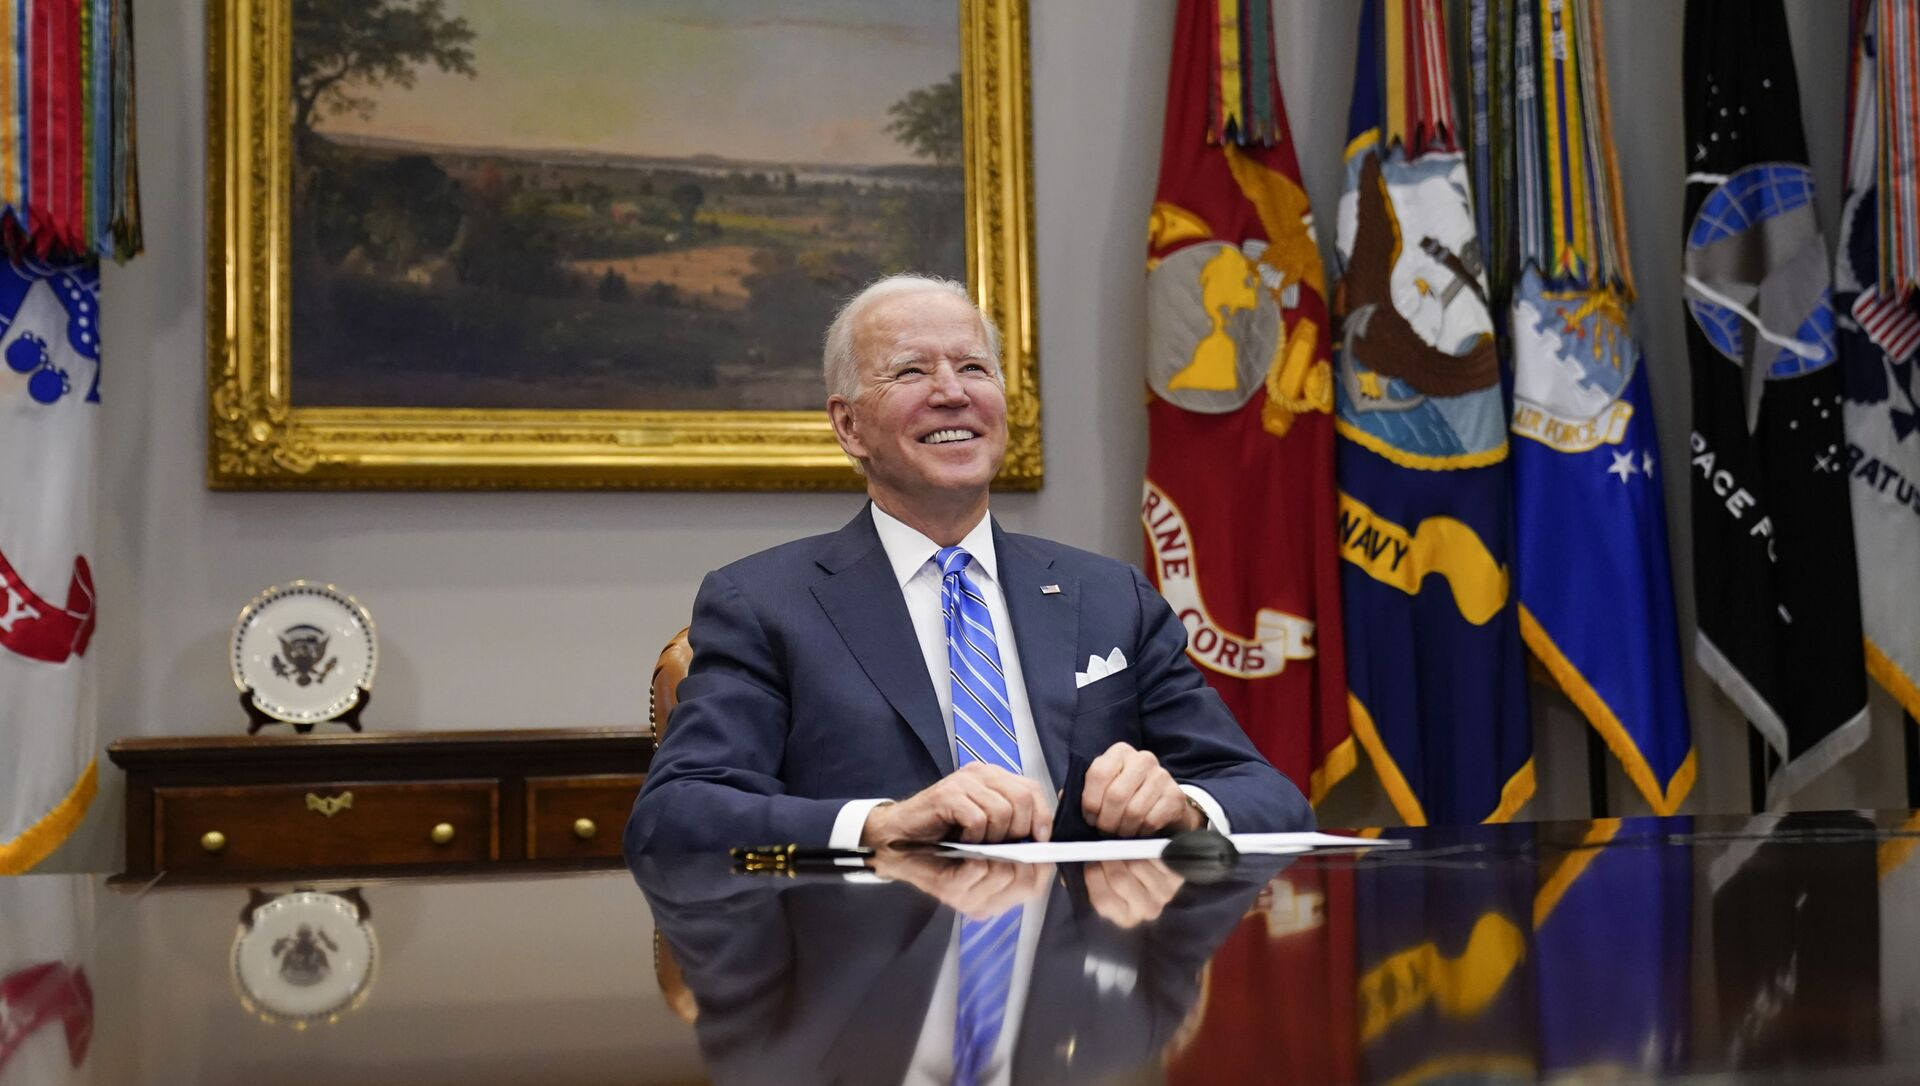 President Joe Biden congratulates NASA's Jet Propulsion Laboratory Mars 2020 Perseverance team for successfully landing on Mars during a virtual call in the Roosevelt Room at the White House, Thursday, March 4, 2021 - Sputnik International, 1920, 06.03.2021